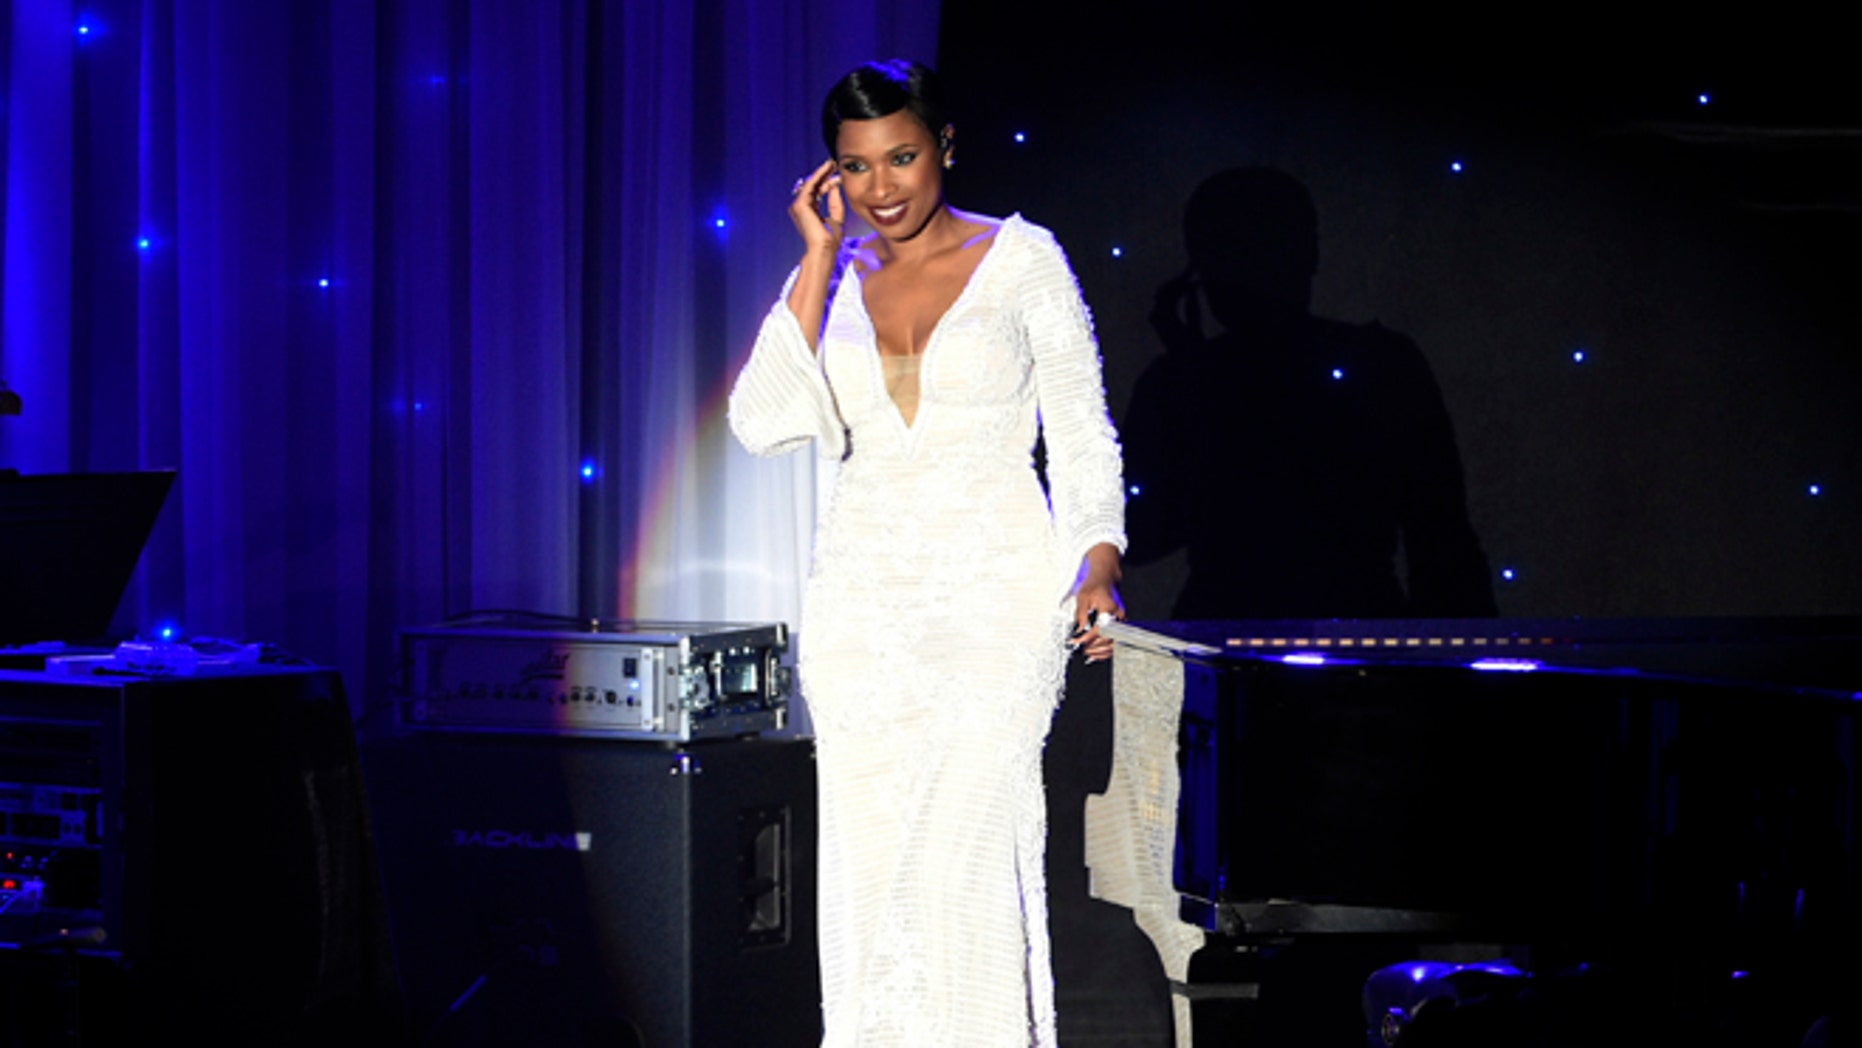 Jennifer Hudson performed at Clive Davis' annual pre-Grammy bash.